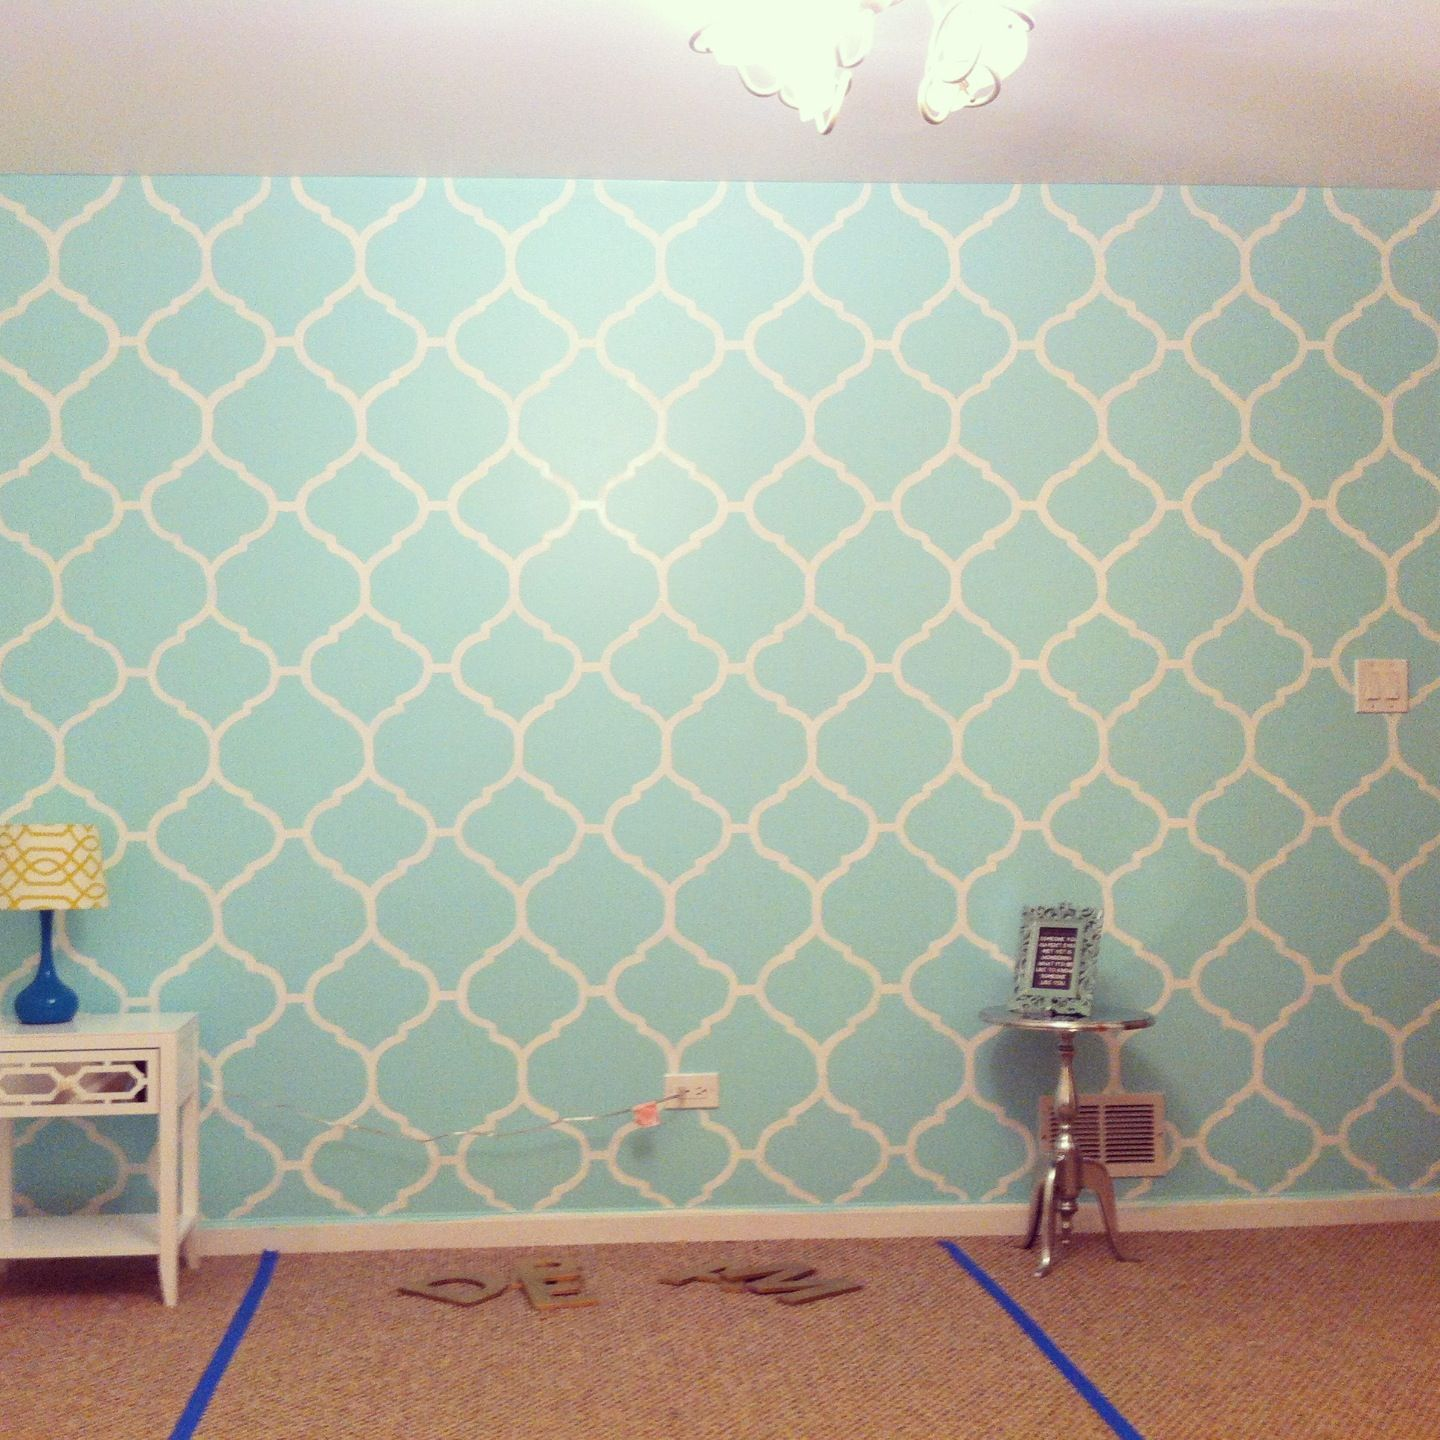 My mint green bedroom accent wall. Freehand painted